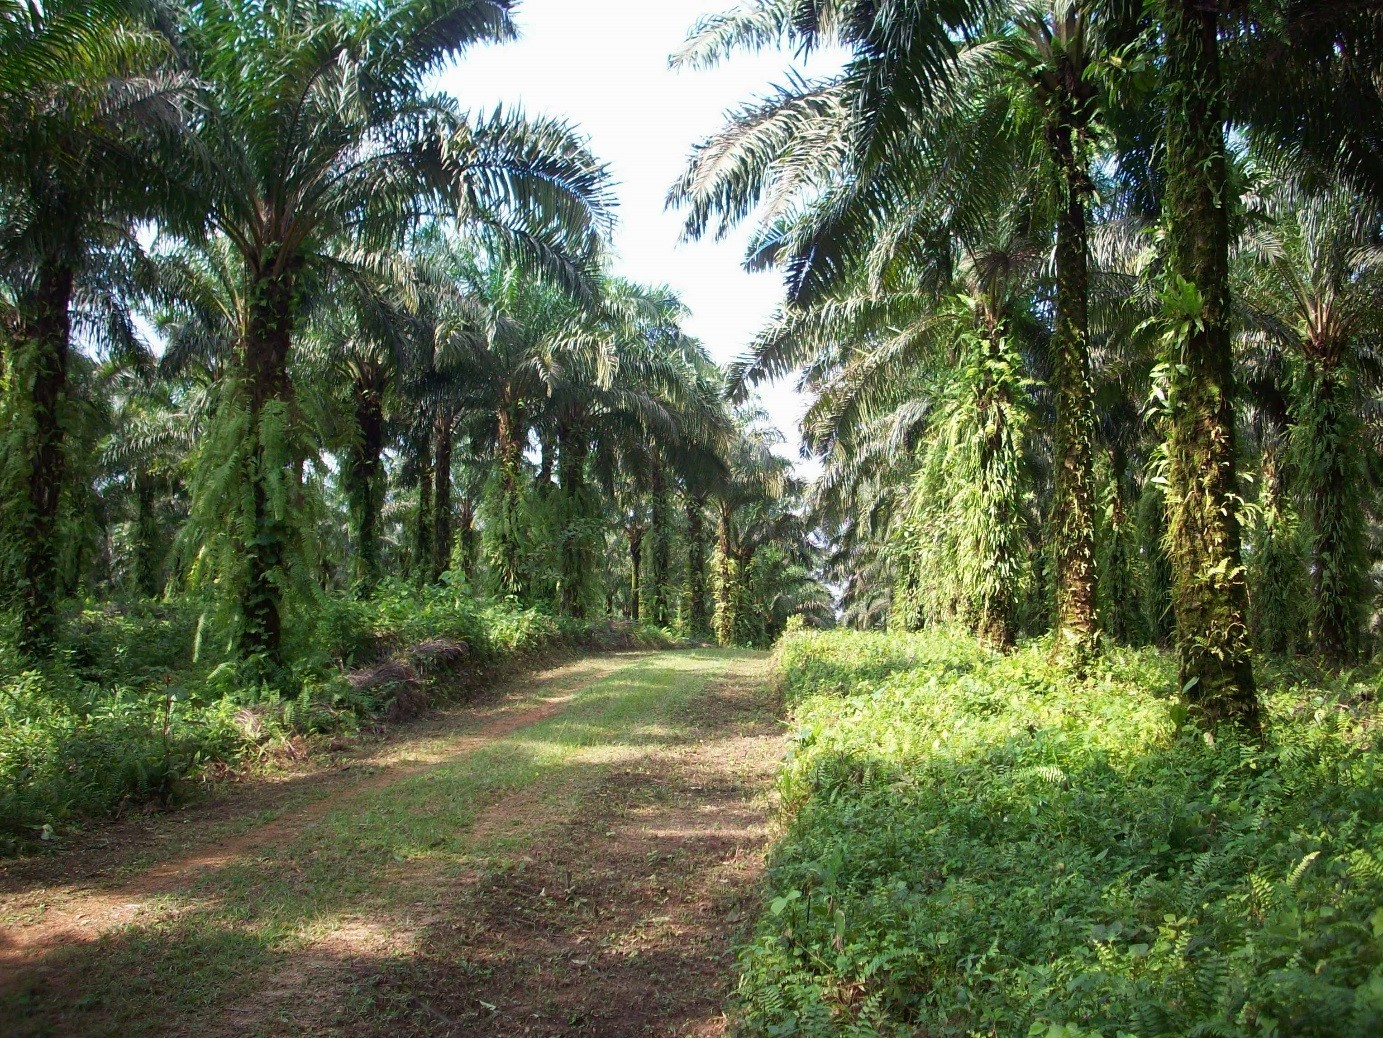 Part of the data collection took place in an industrial oil palm plantation, which was home to only small proportions of the native bird species.